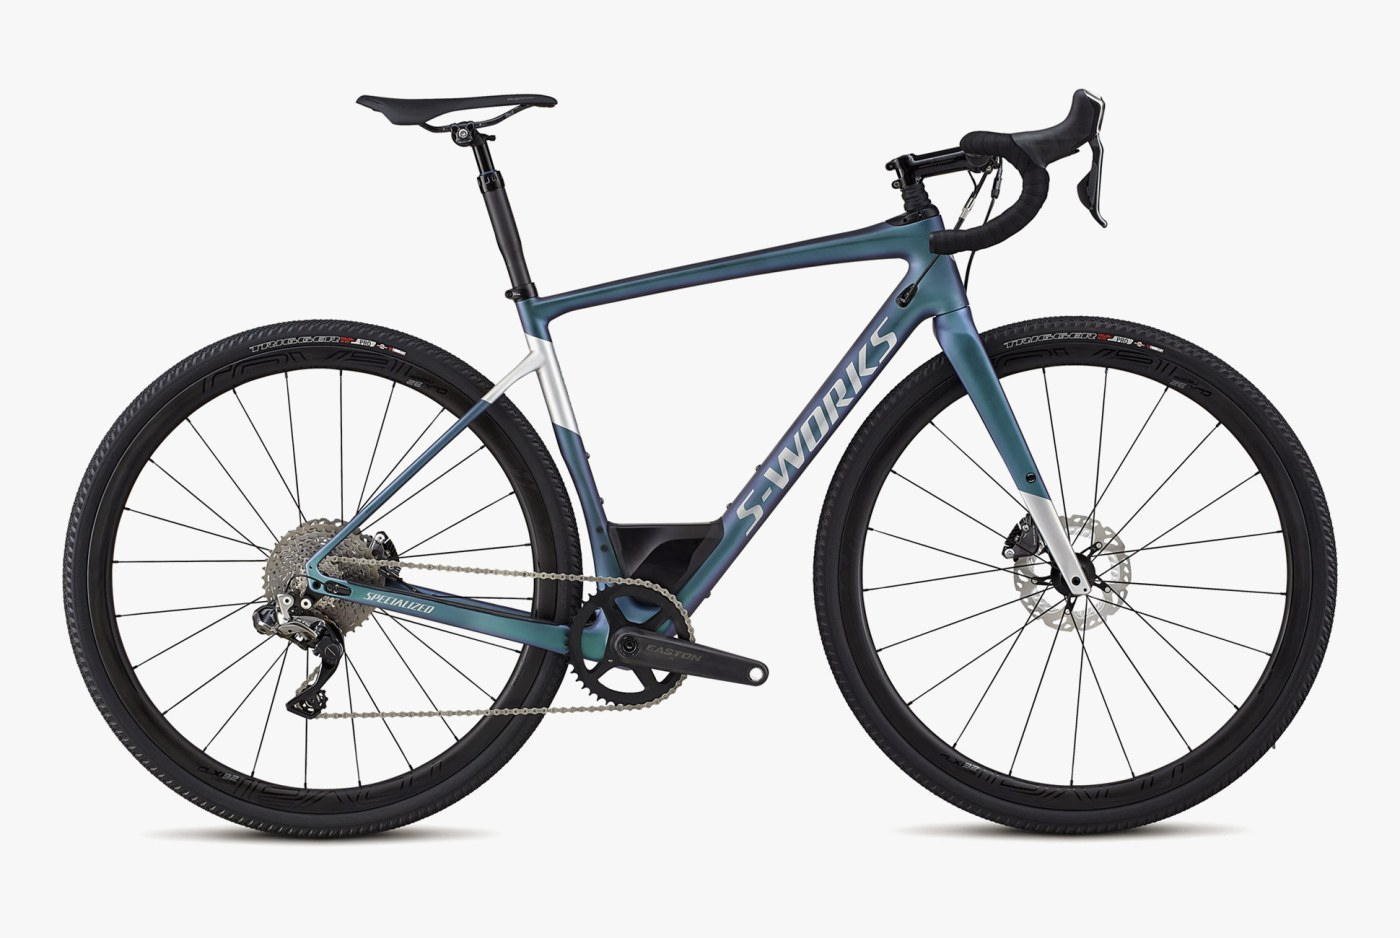 Specialized Adds Suspension to its Diverge Gravel Bike 3